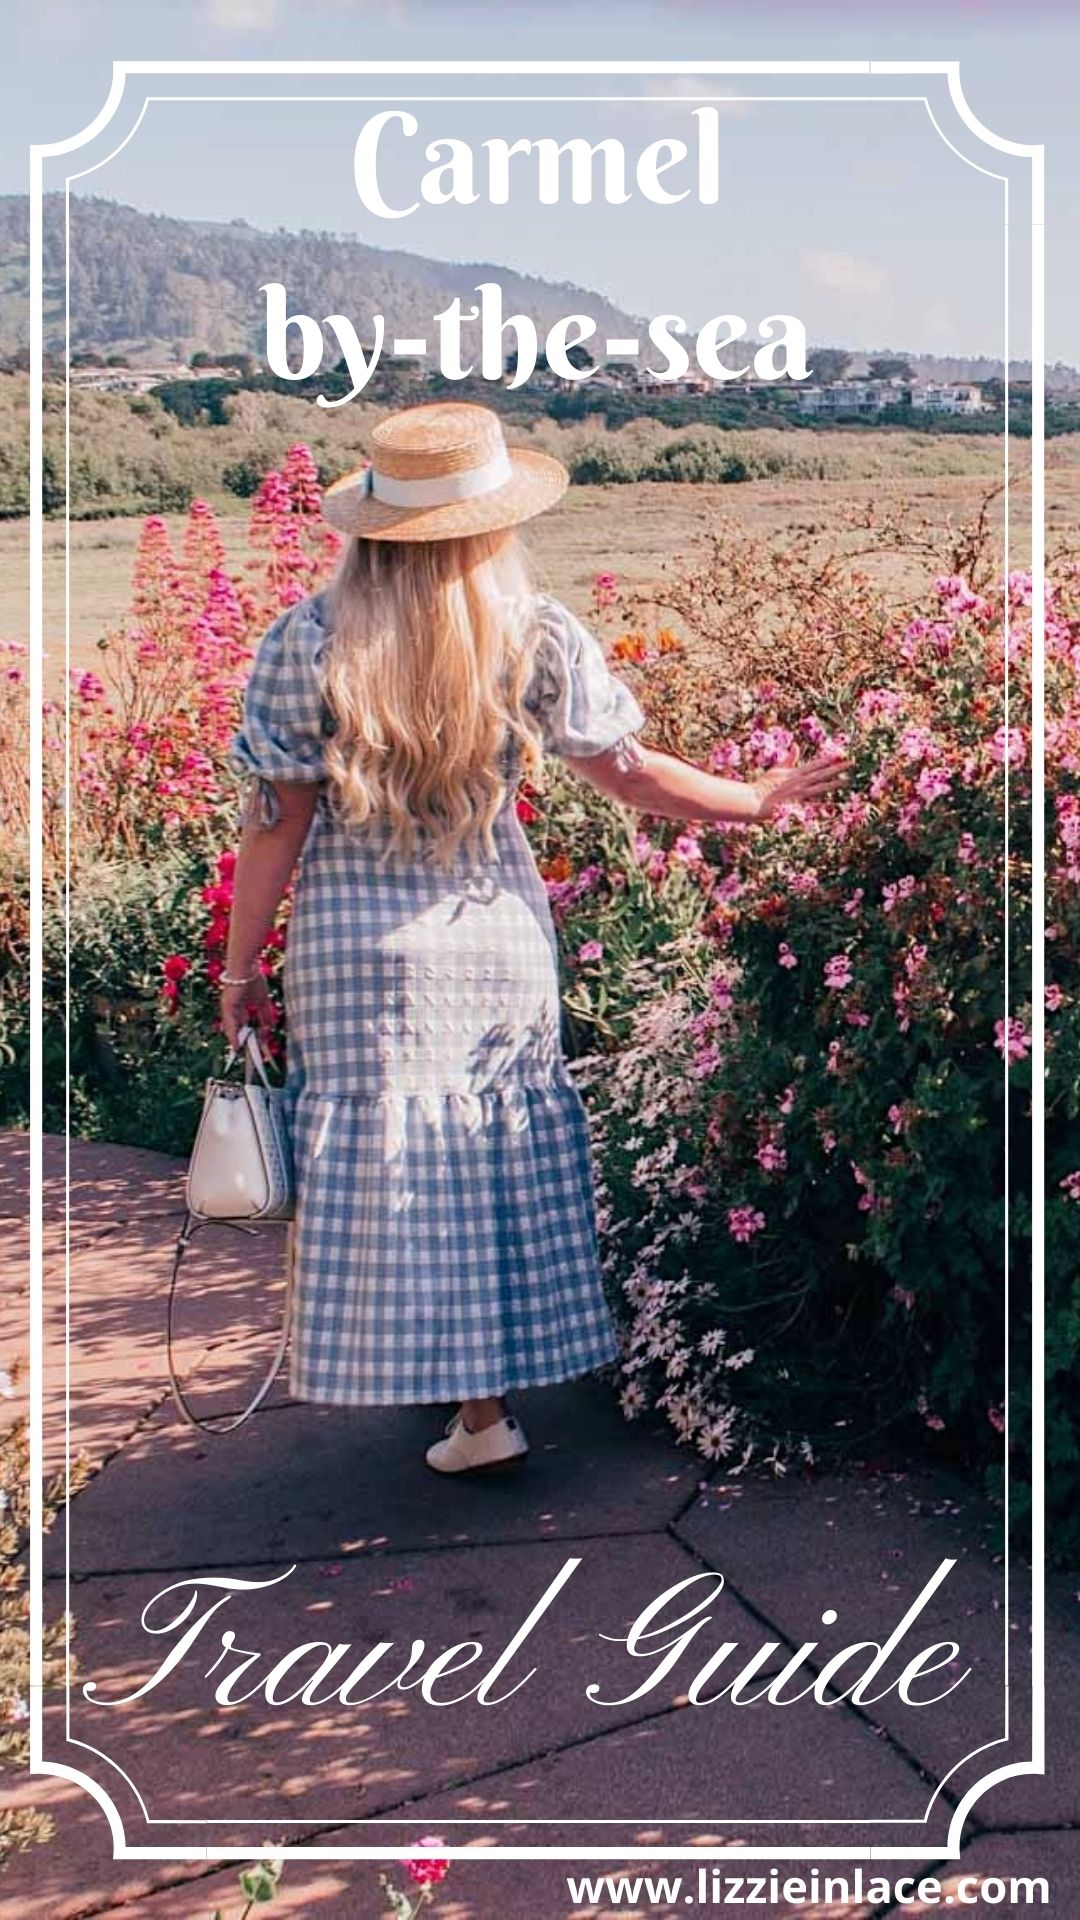 Fashion Blogger Elizabeth Hugen of Lizzie in Lace shares what to do in Carmel by-the-sea and includes her favorite feminine travel outfit ideas like this River Island blue Gingham Dress and a full Carmel by-the-sea Travel Guide